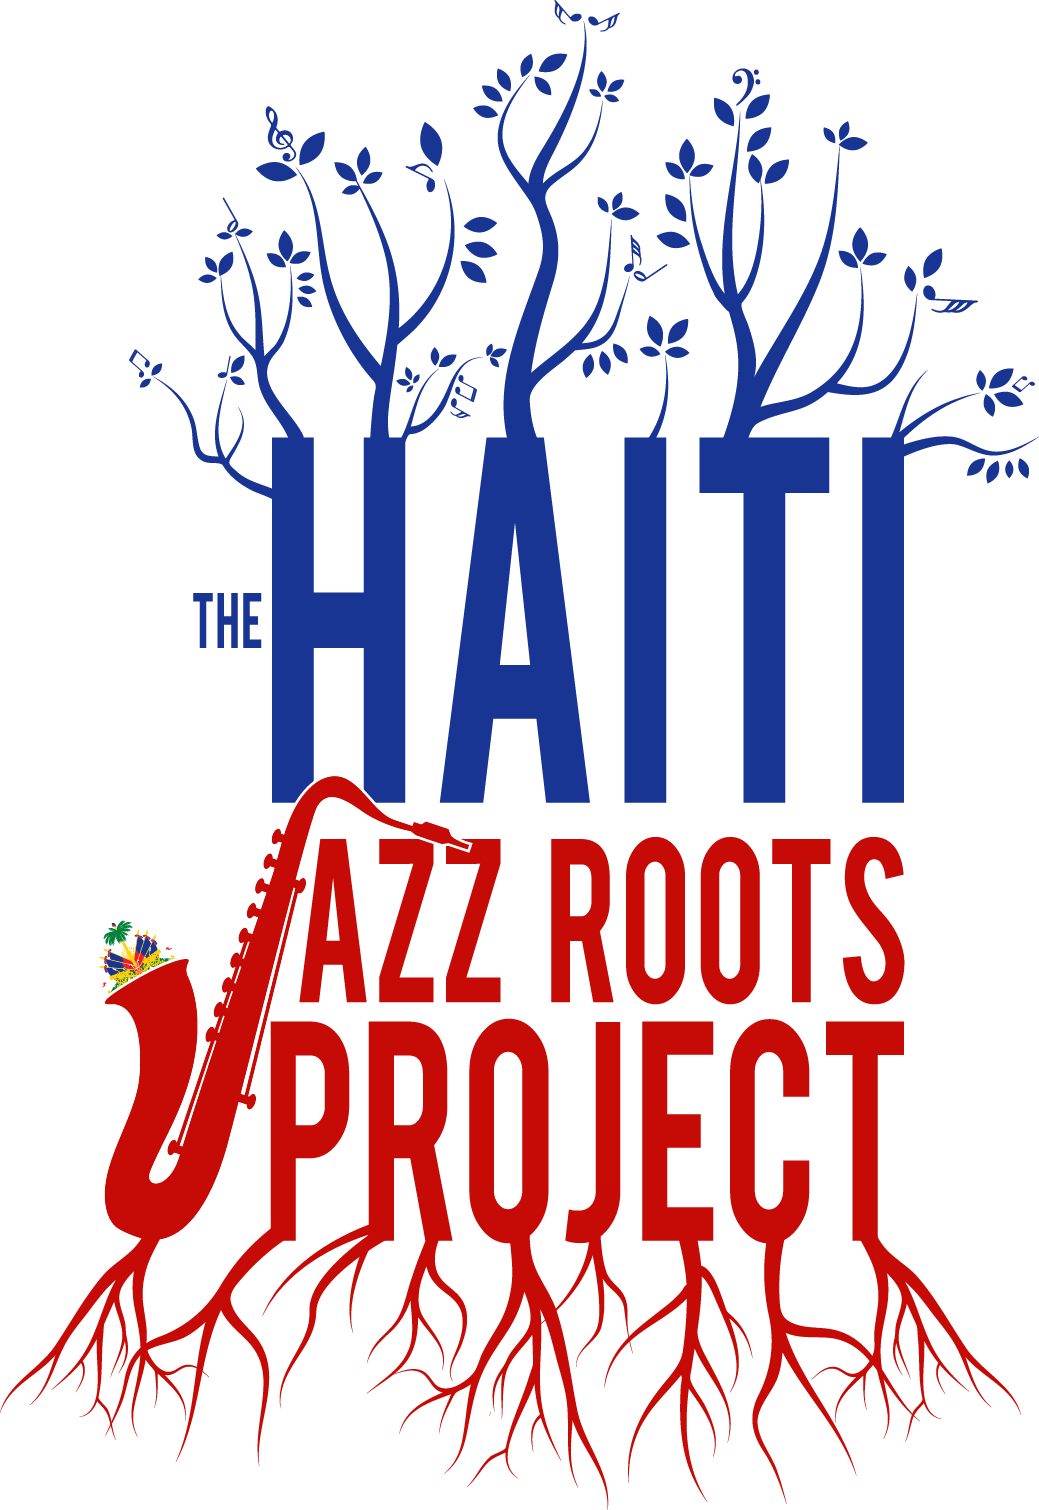 Jazz at MOCA × Haiti Jazz<br />Roots Project&#8221; width=&#8221;374&#8243; height=&#8221;544&#8243; />The project is an eclectic blend of outstanding musicians performing jazz-infused folkloric Haitian music. Led by guitarist Jean Chardavoine, the group comprises Jennifer Louis (vocals), Mike Levine (piano/keys), Kenneth Jiménez (bass), Matisou Légba (Haitian drums), and Shay Eisten (drums). </span></p> <p class=